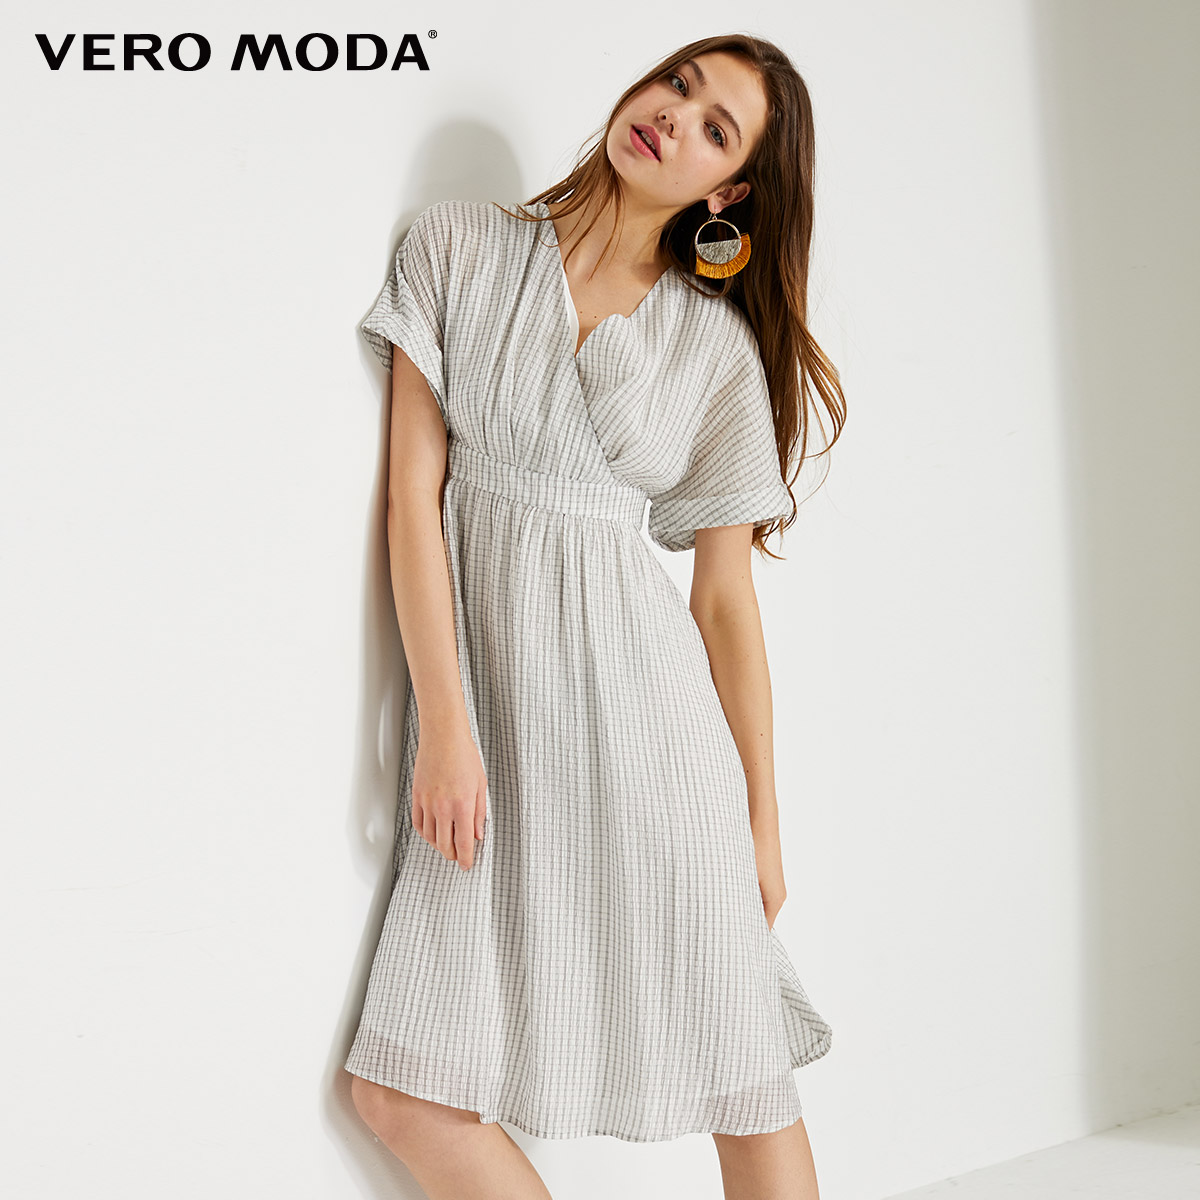 Vero Moda Women's Grain Fabric V-neckline Dress | 31927B537